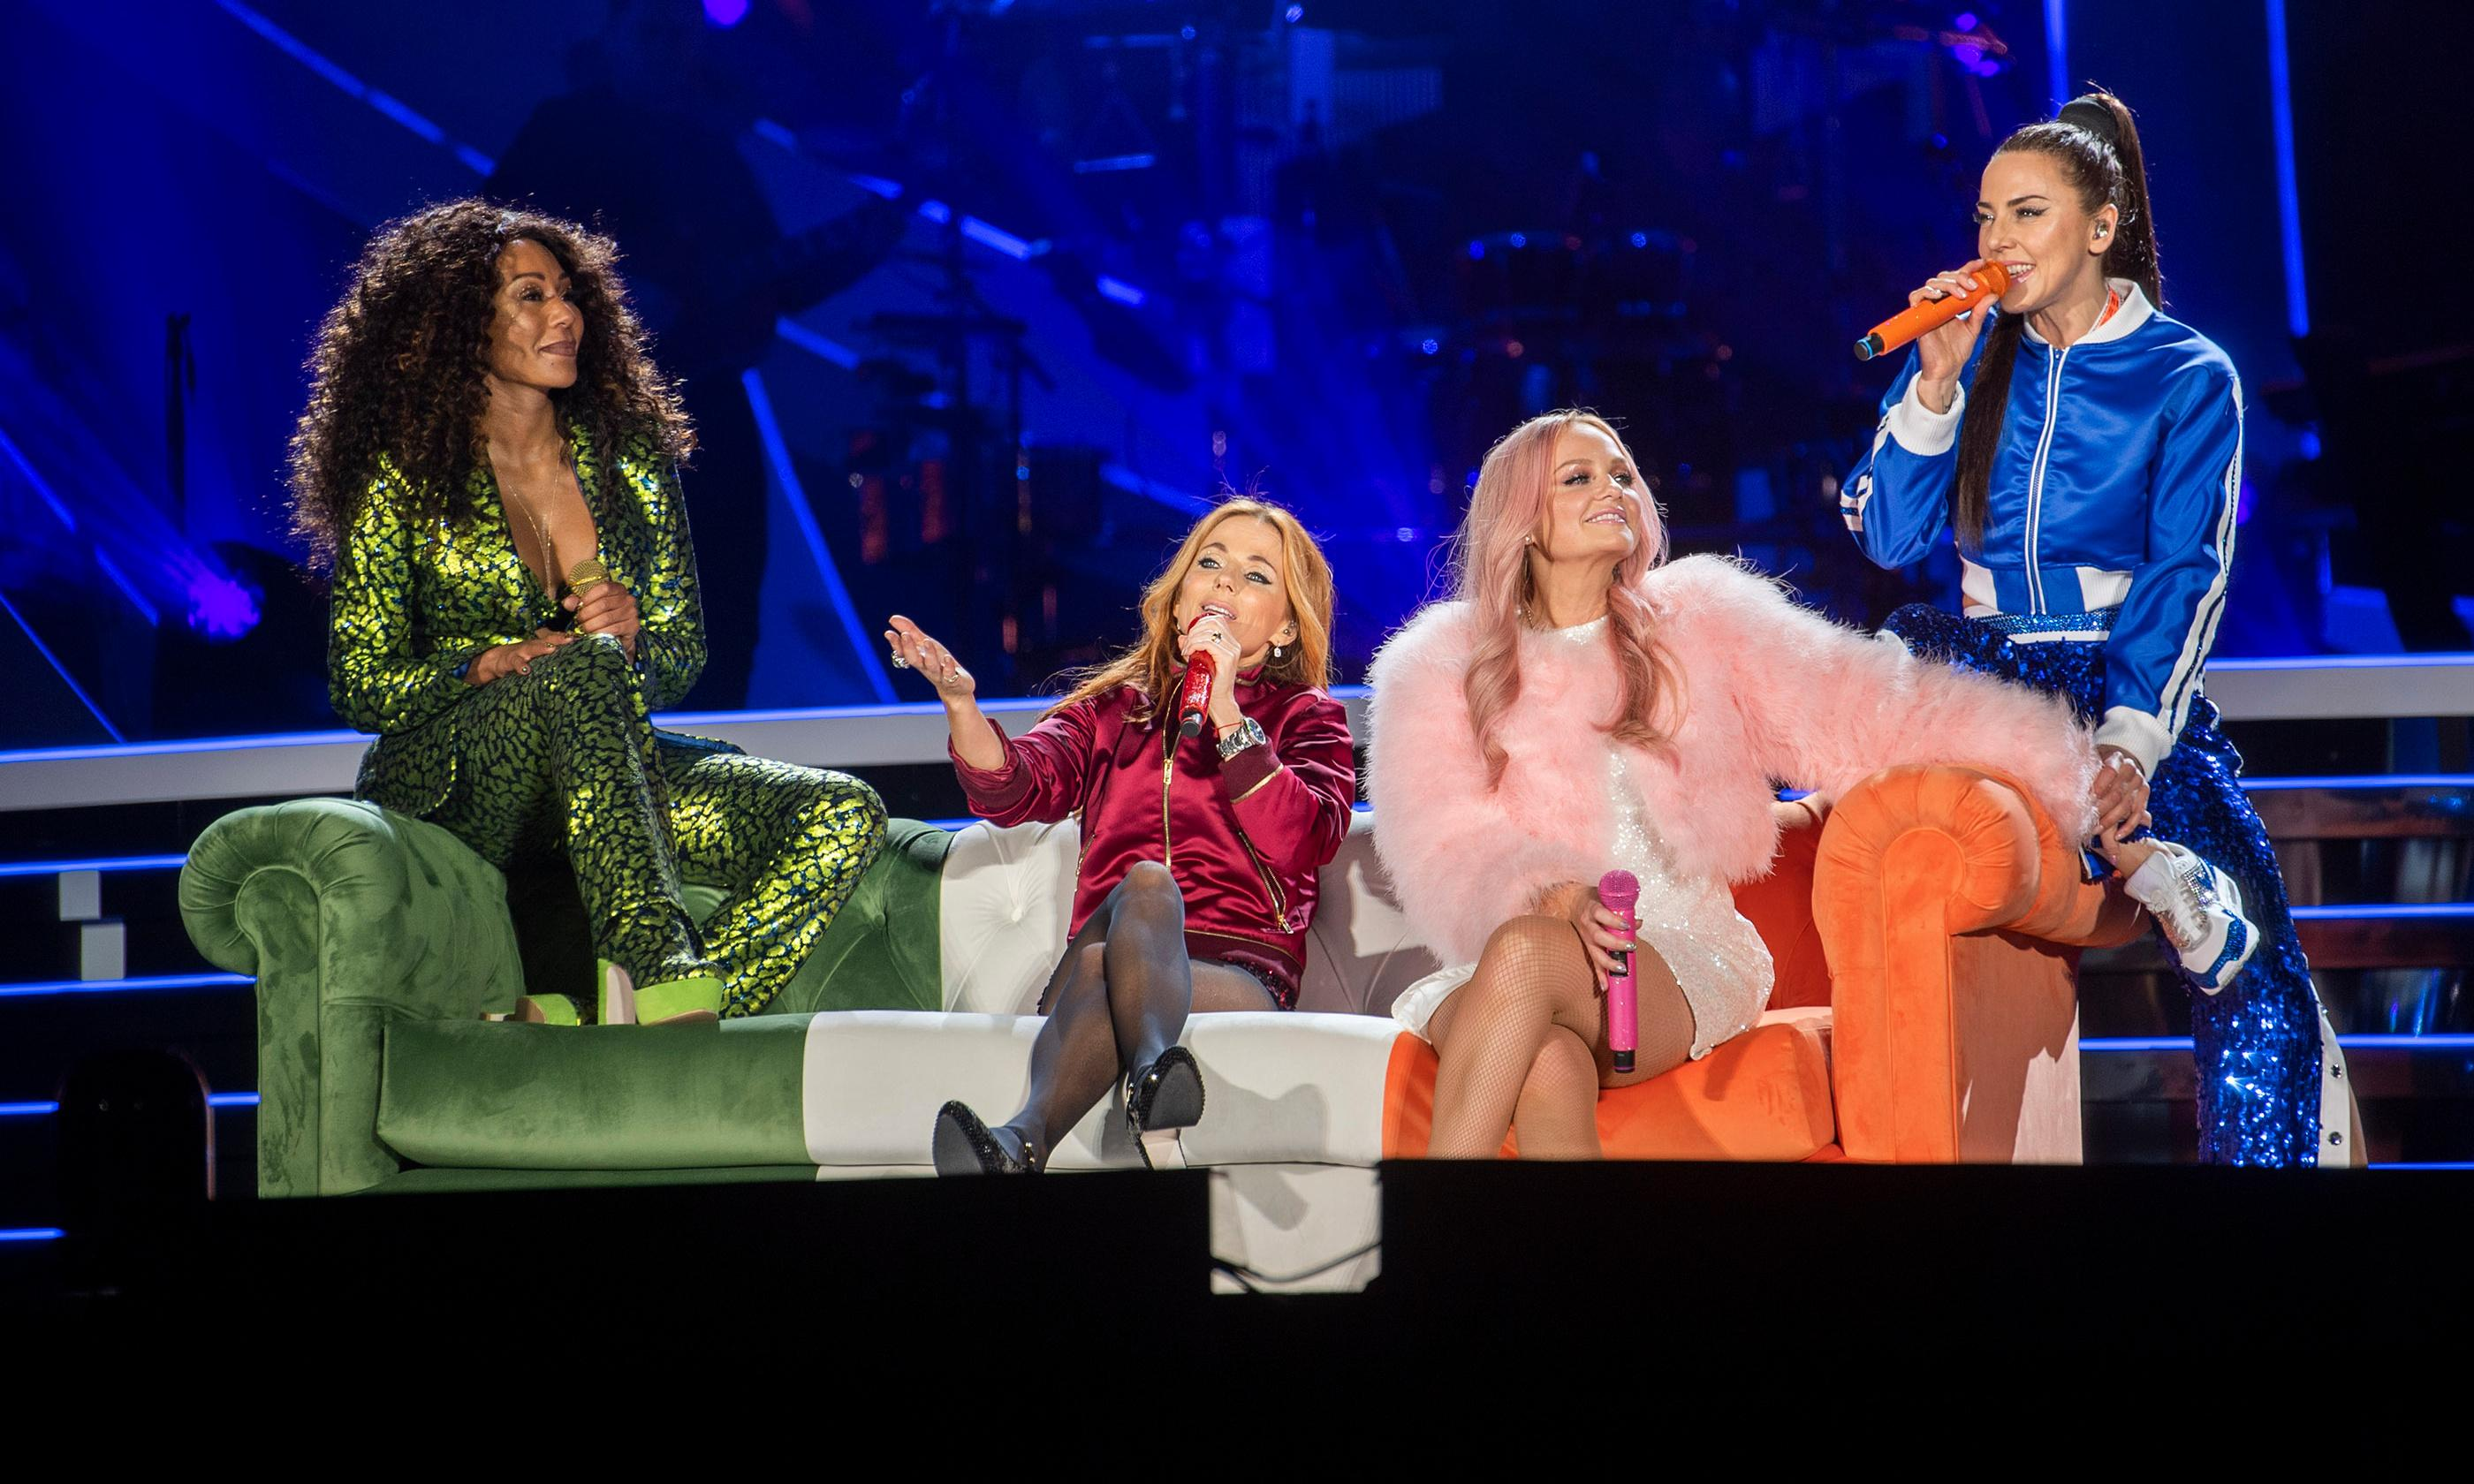 Spice Girls fans complain of 'awful' sound at Dublin gig